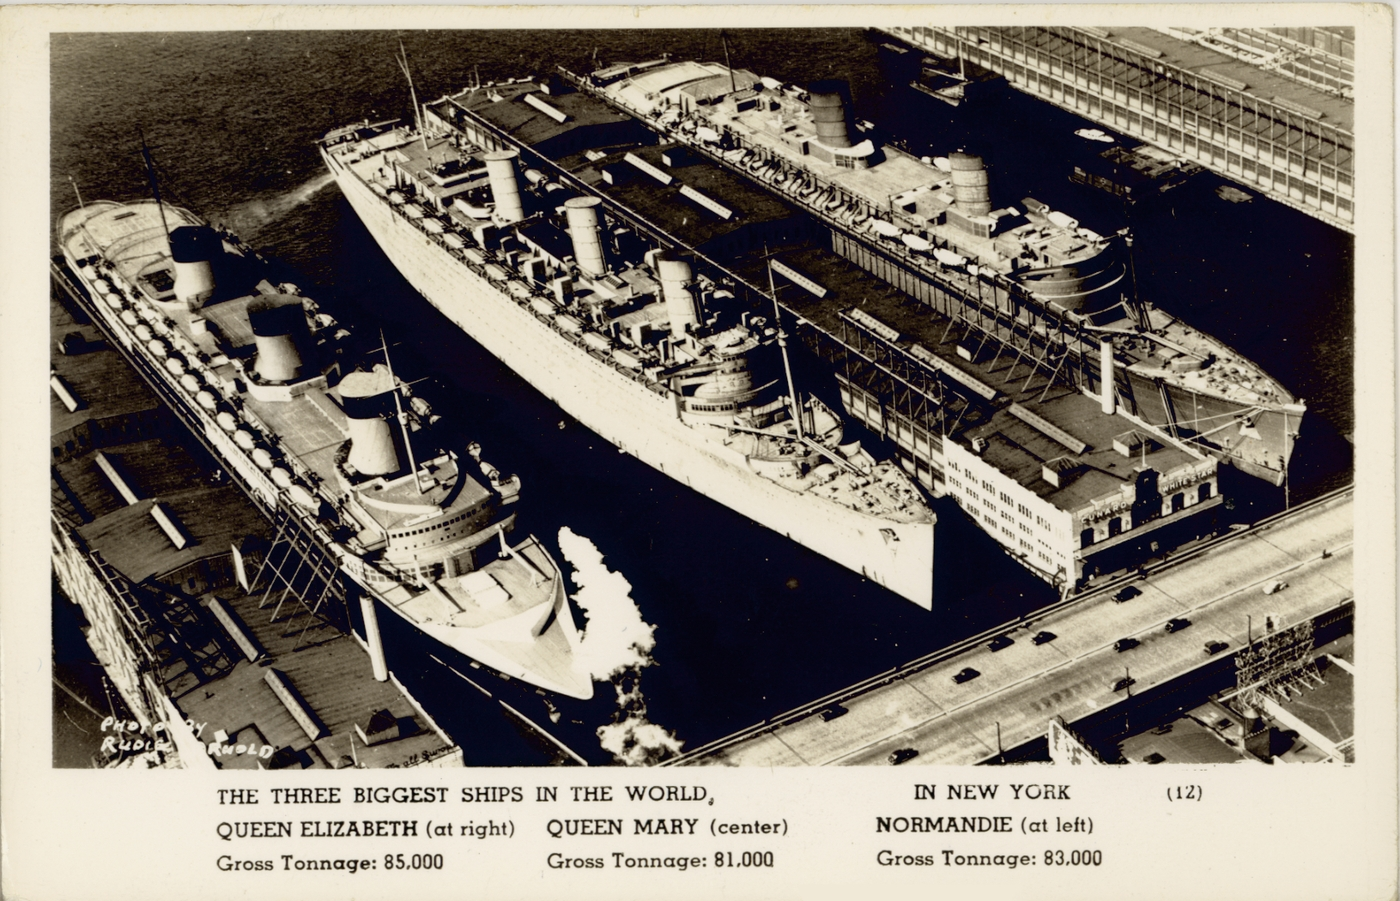 The three largest ships in the world, all docked in mid-Manhattan, not Chelsea Piers because it could not accommodate their size (Courtesy State Library of New South Wales)